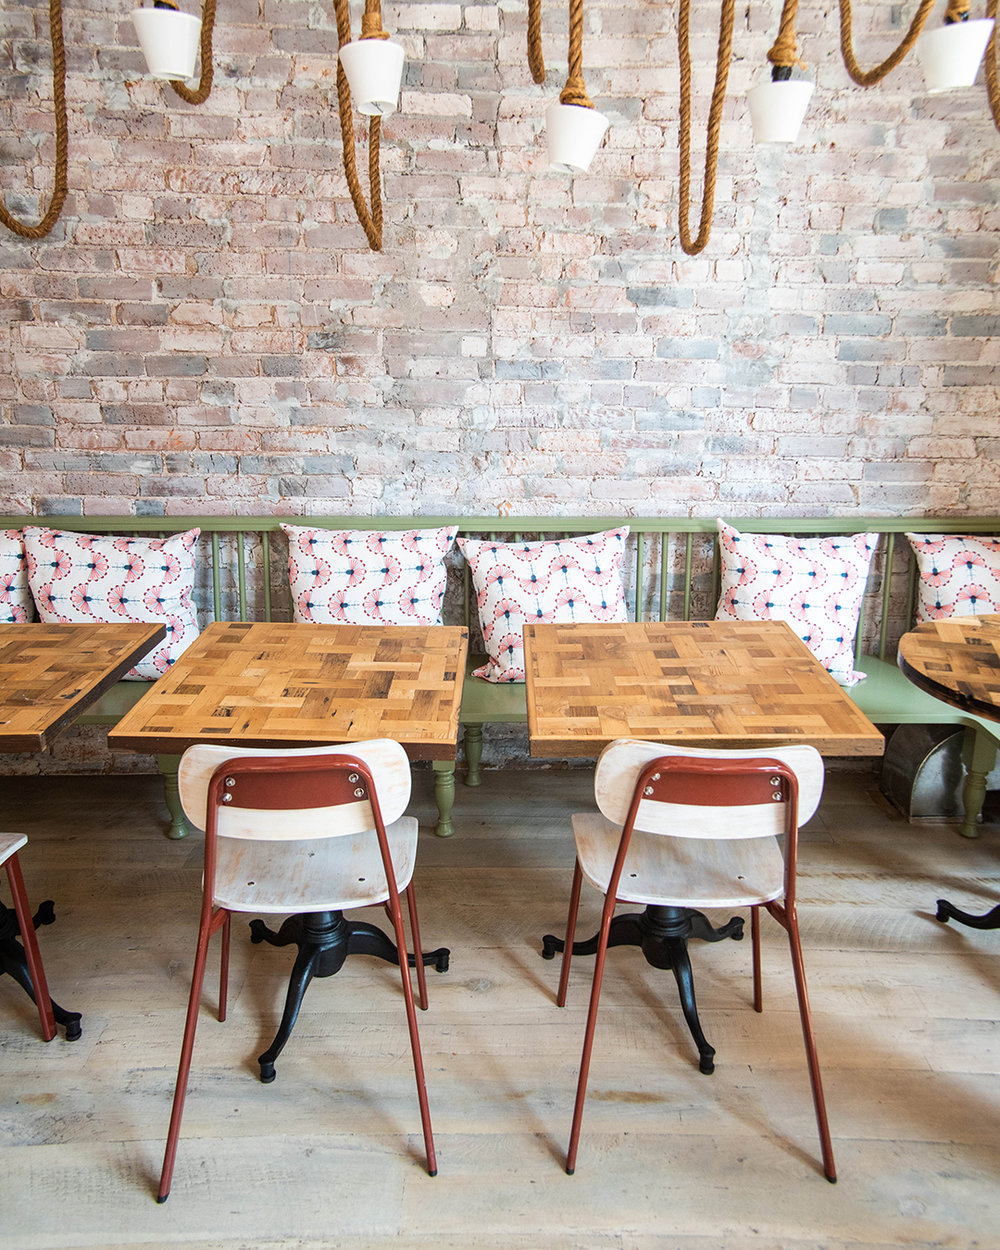 Reclaimed Basketweave Tables and White-Washed Reclaimed Flooring at Rosemary's Pizza NYC